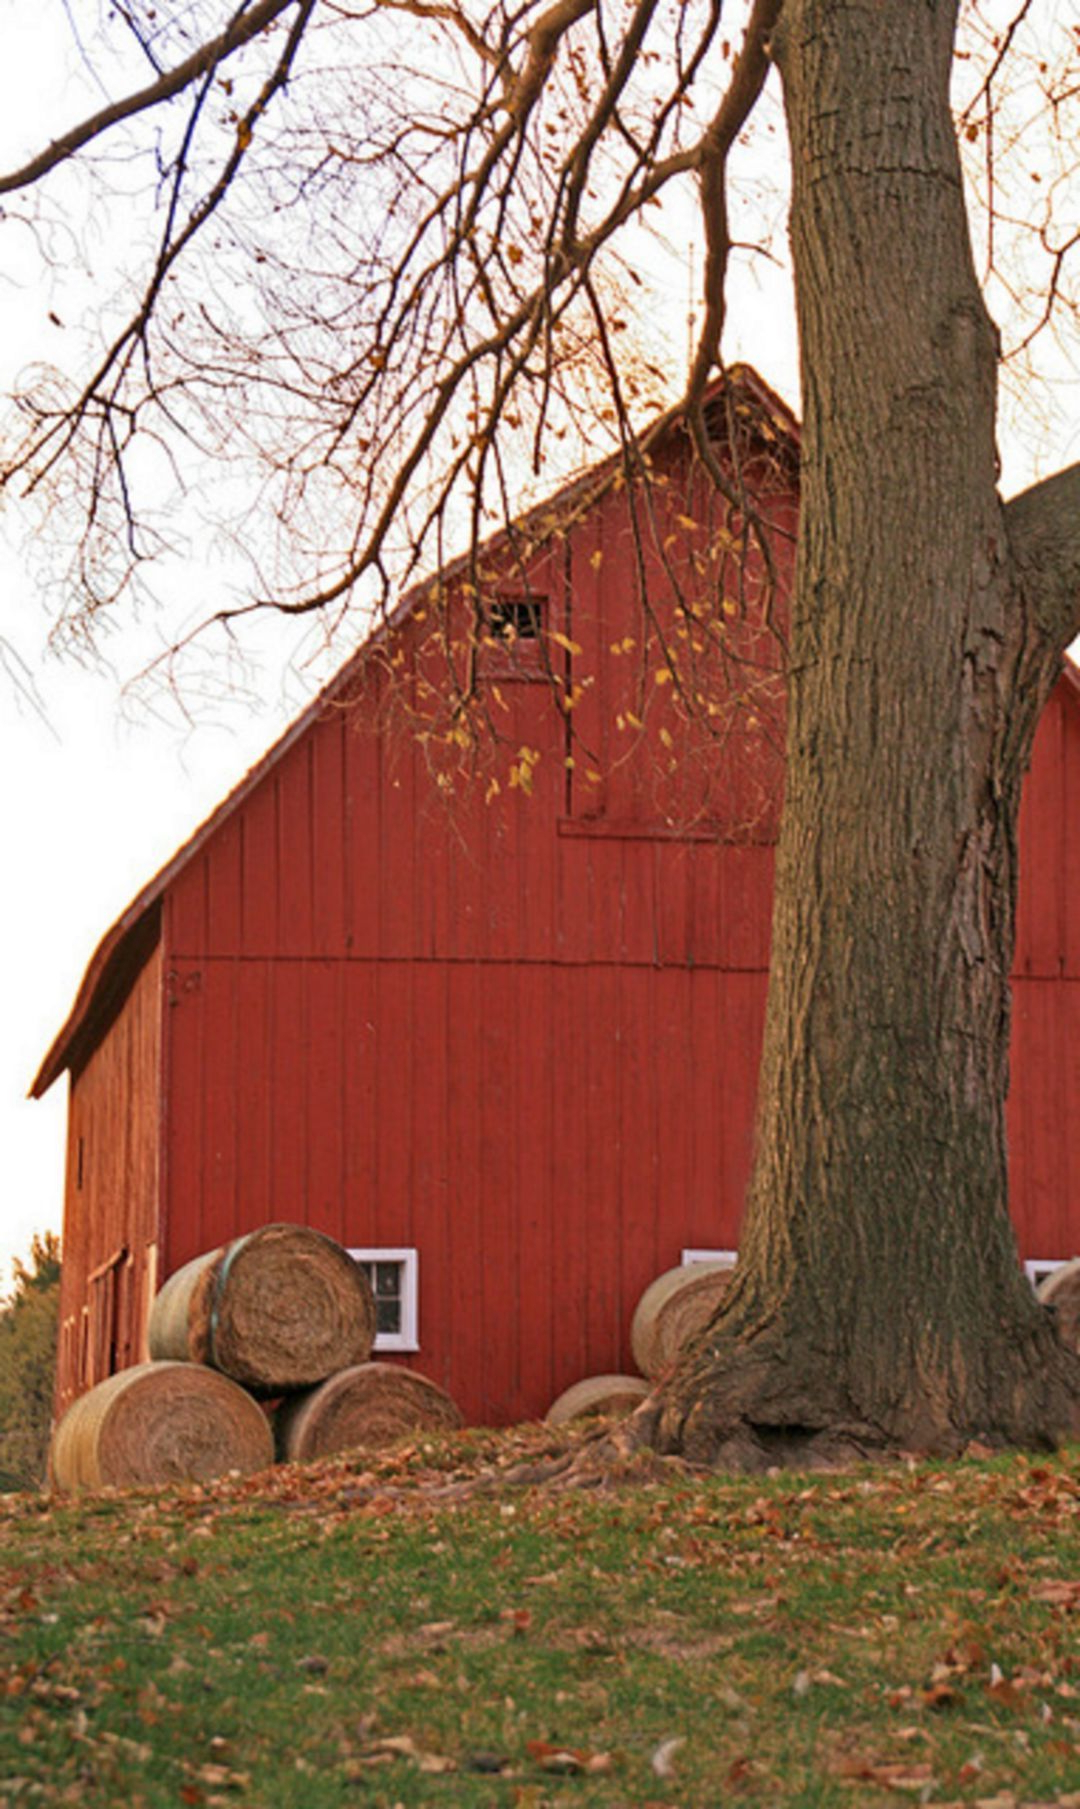 30 Fantastic Red Barn Building Ideas For Inspire You With